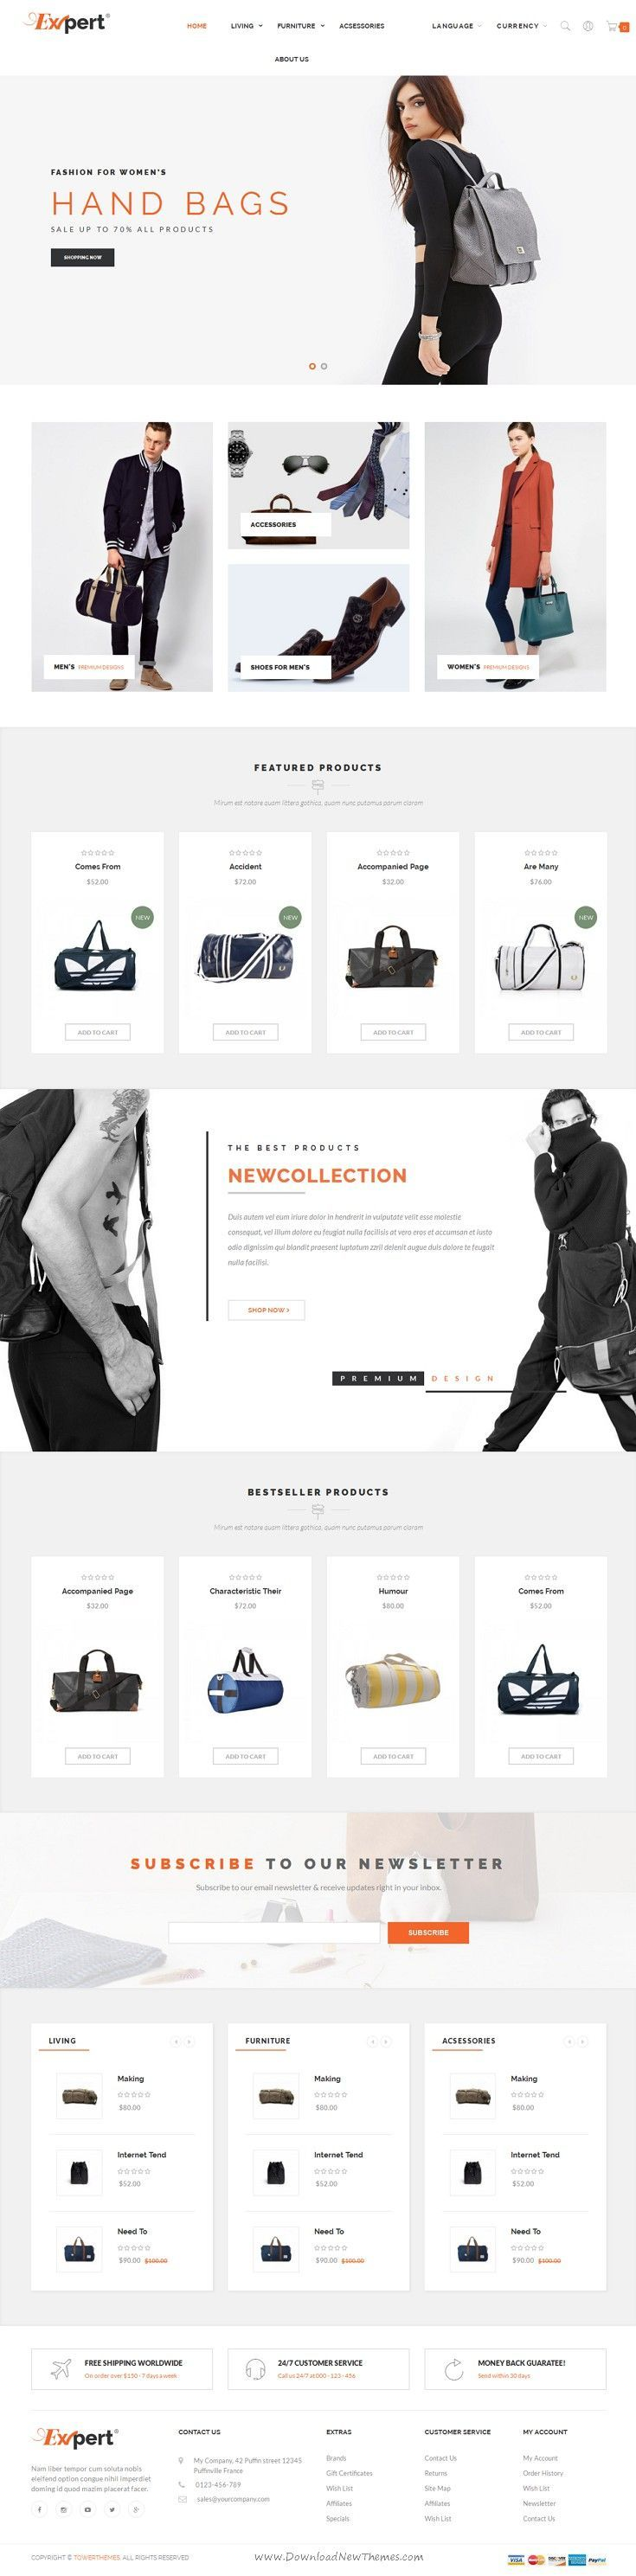 Expert is lattest Responsive Opencart Theme for multipurpose #eCommerce #websites with 4 homepage layouts and great features. #fashionstore Download Now!